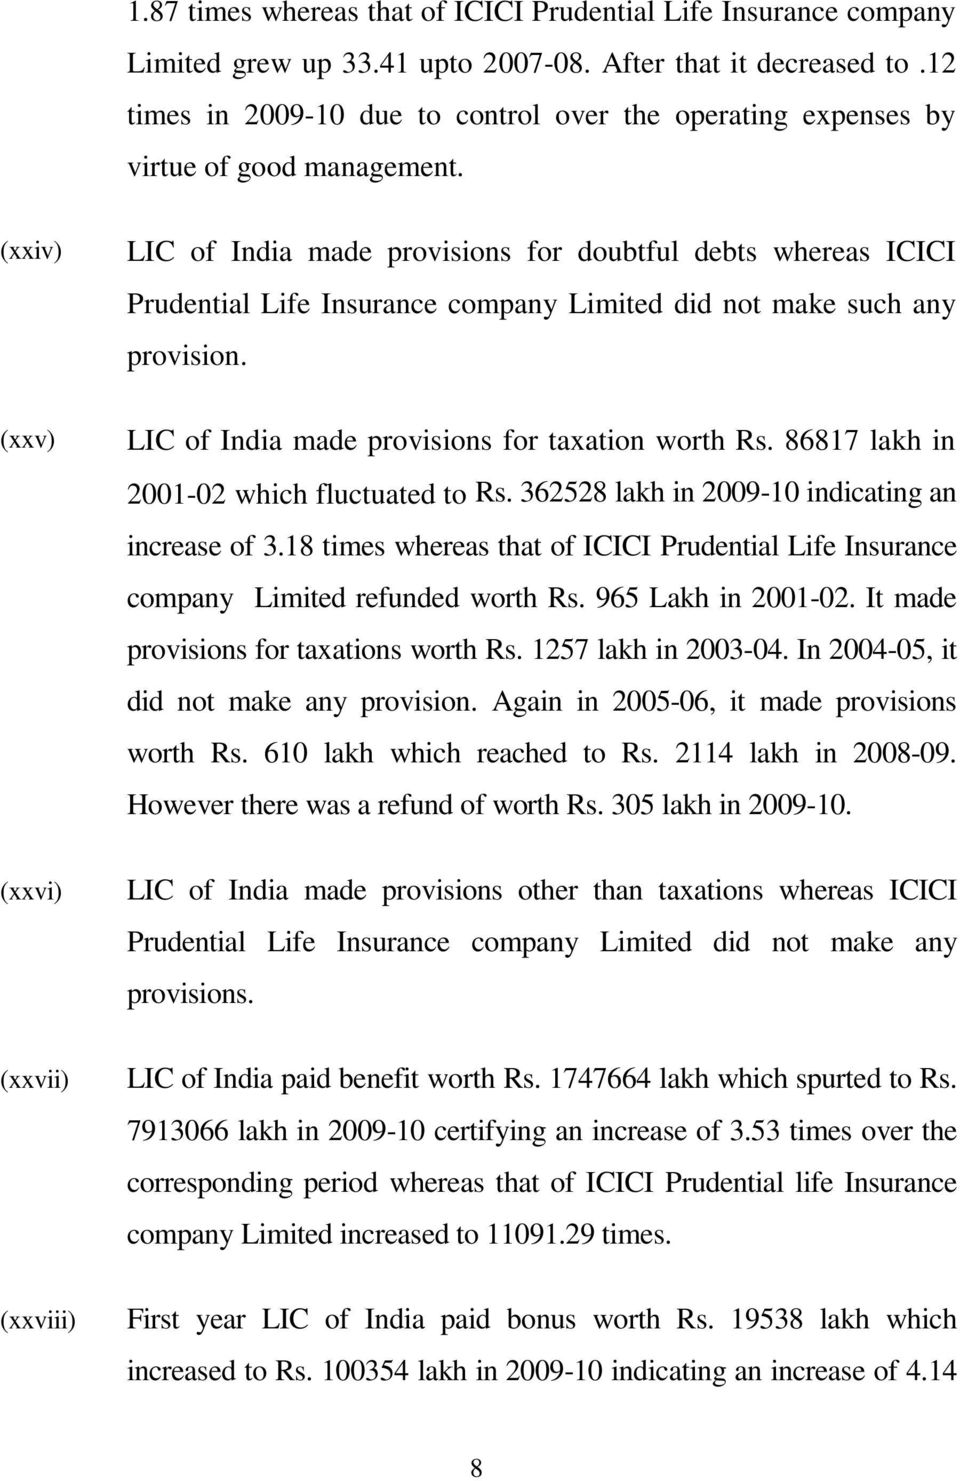 (xxiv) LIC of India made provisions for doubtful debts whereas ICICI Prudential Life Insurance company Limited did not make such any provision.